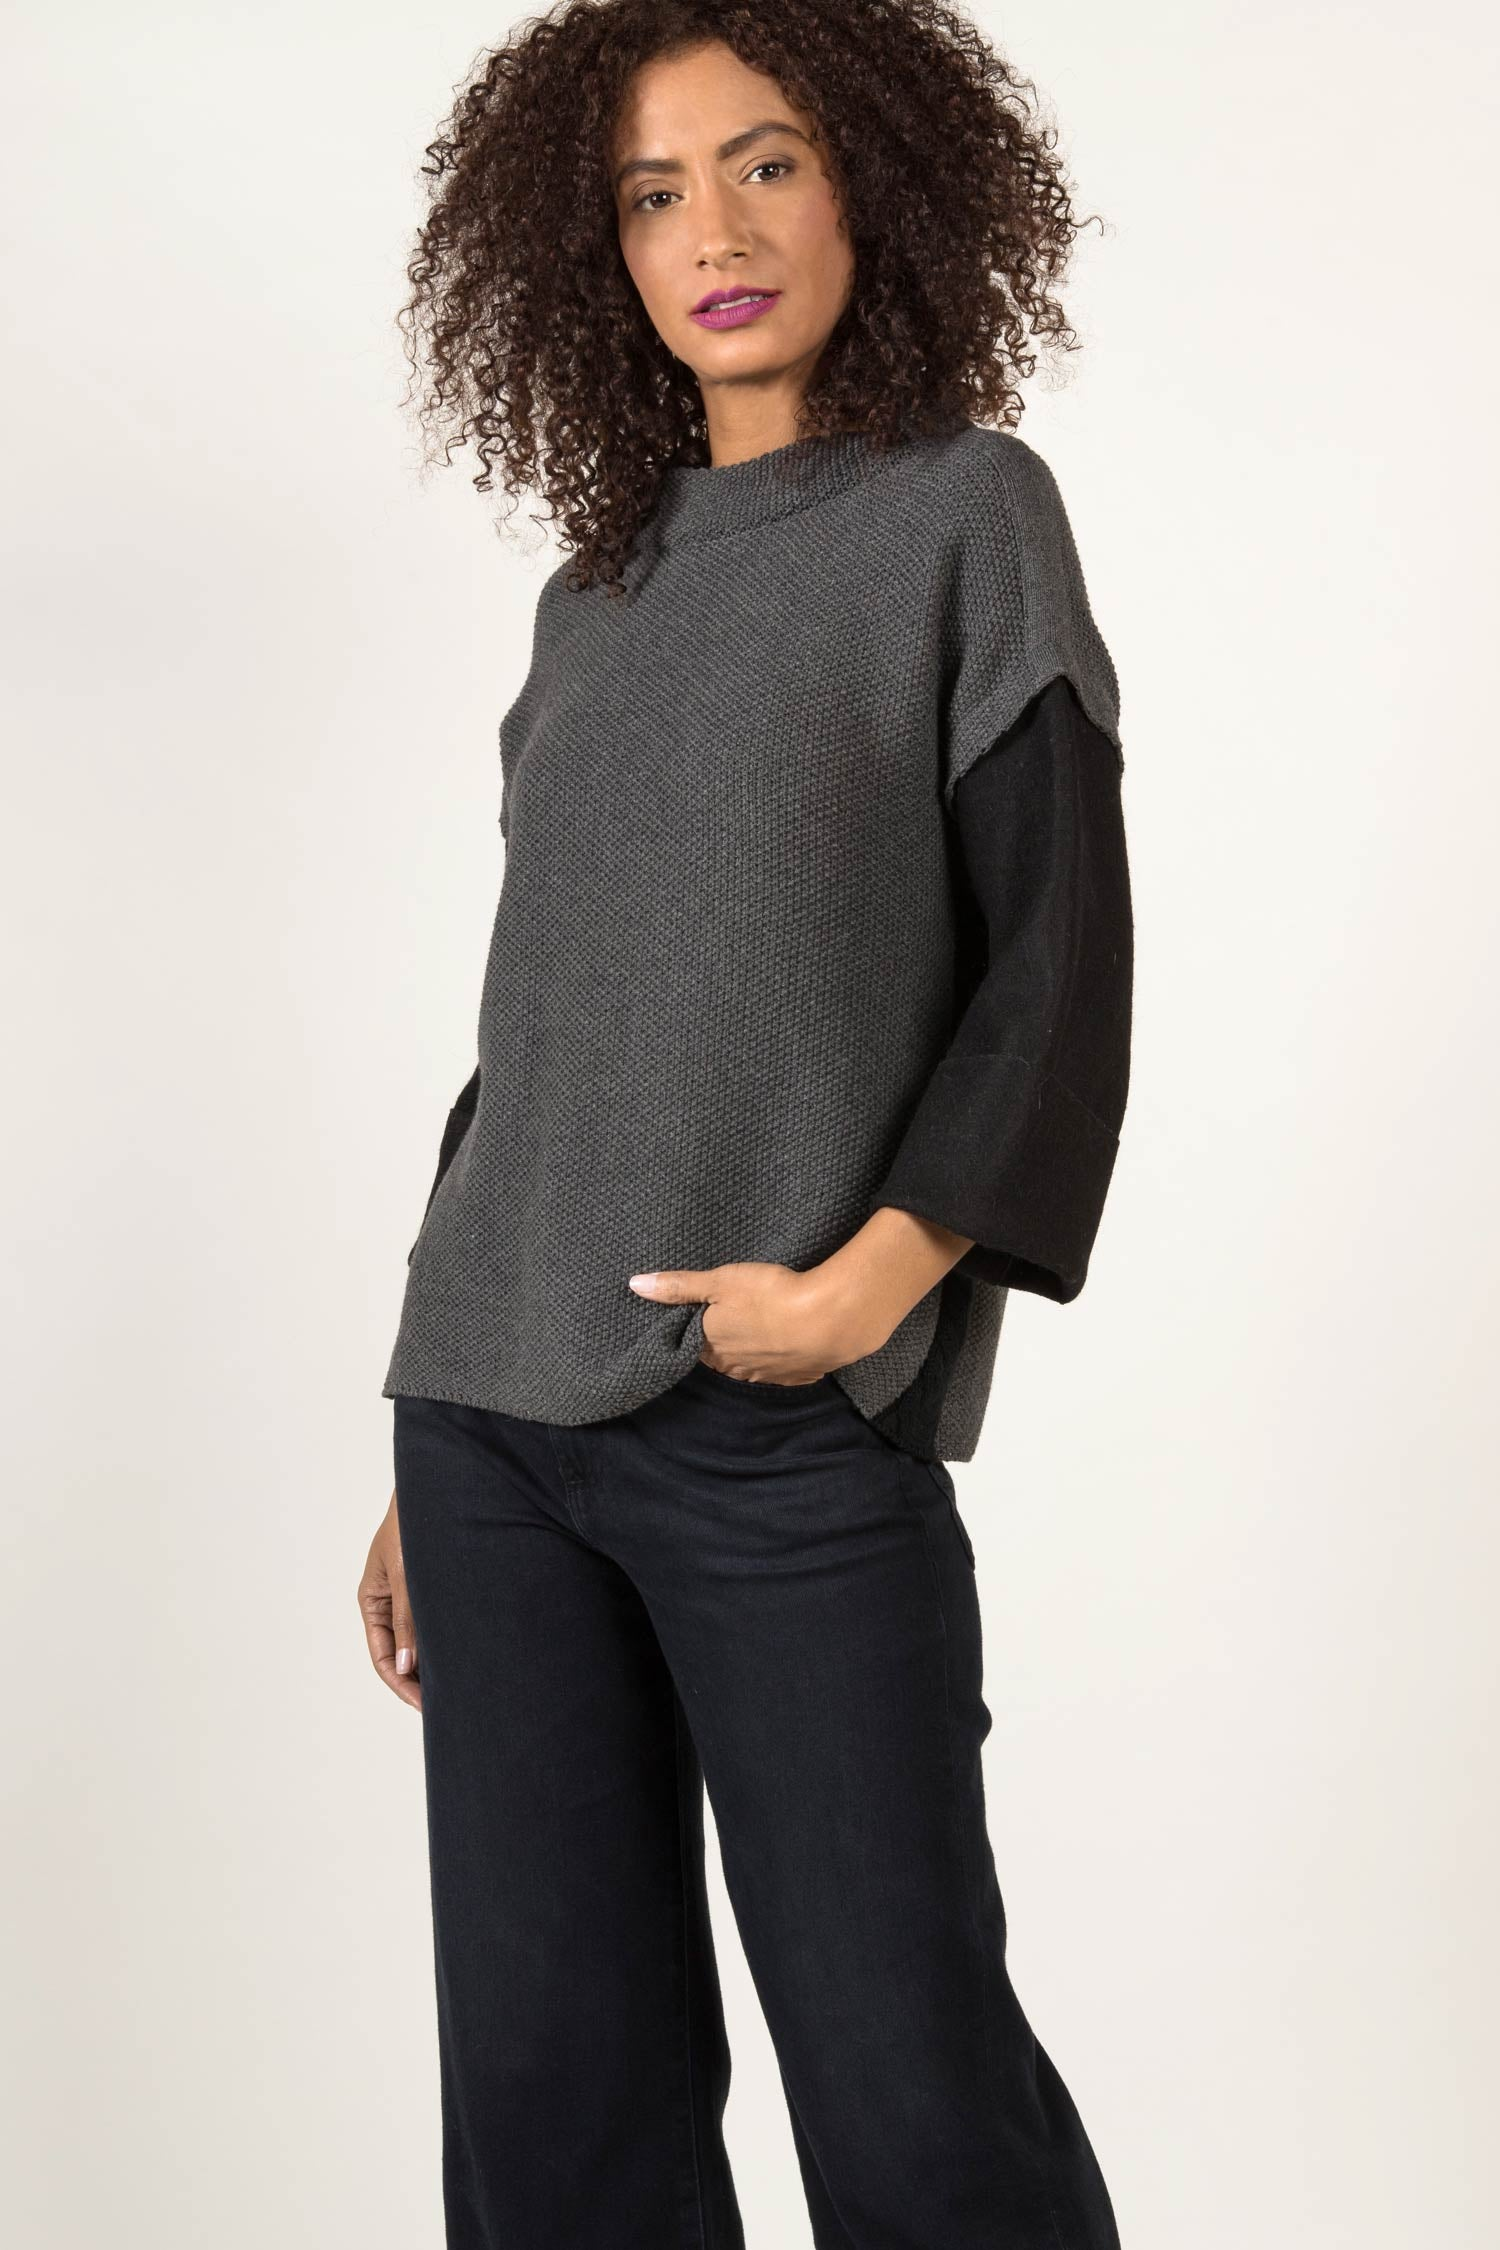 Womens Organic Cotton Sweater | Alpaca Sleeve Sweater | Gray Black